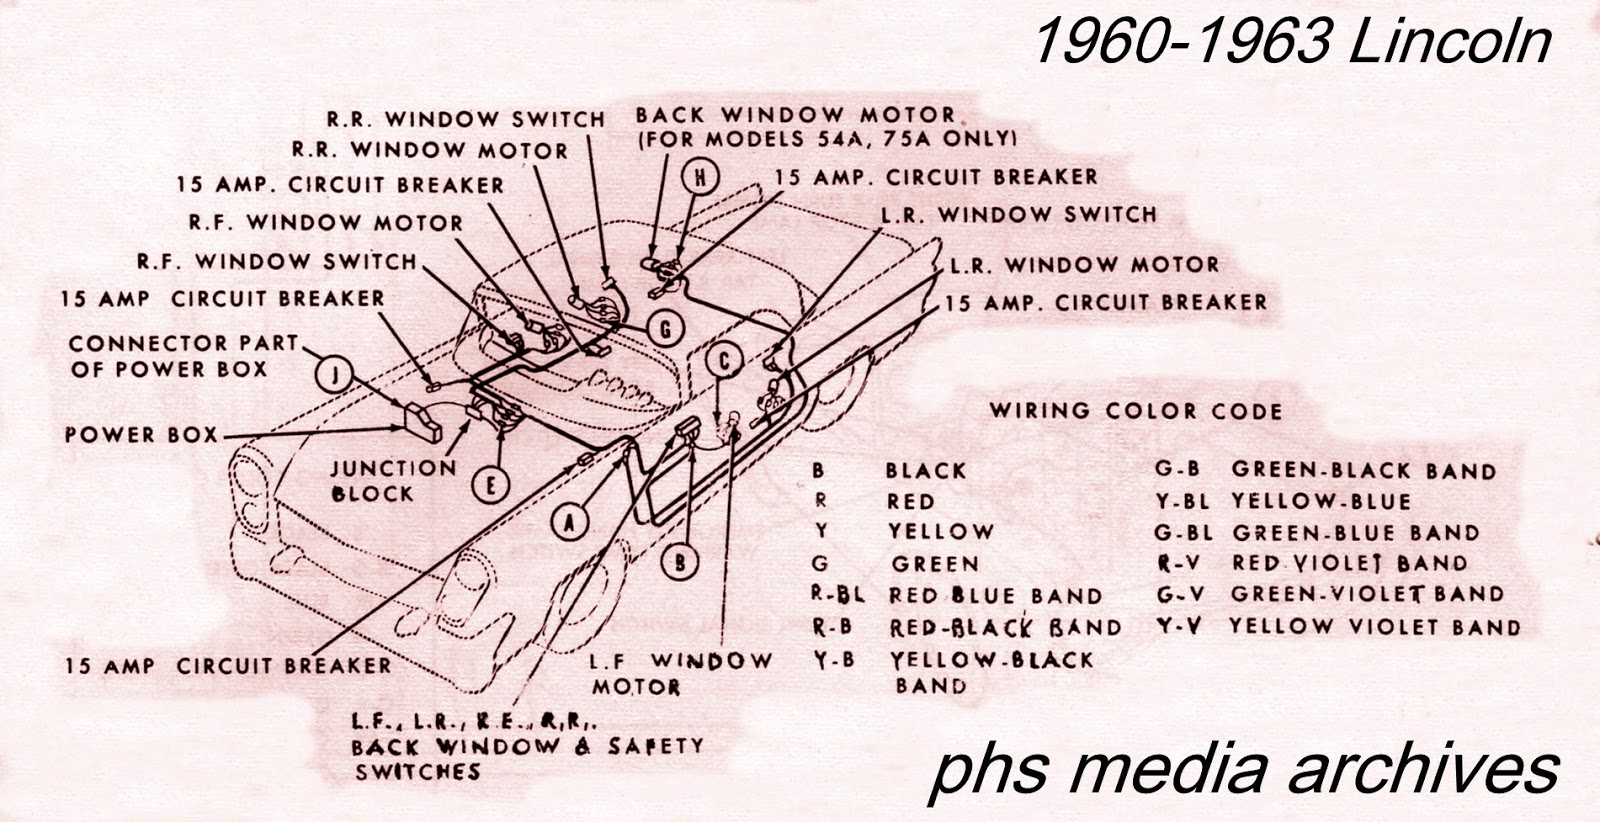 small resolution of tech series 1960 1964 lincoln wiring diagrams phscollectorcarworld rh phscollectorcarworld blogspot com 1998 lincoln navigator wiring diagram 2000 lincoln